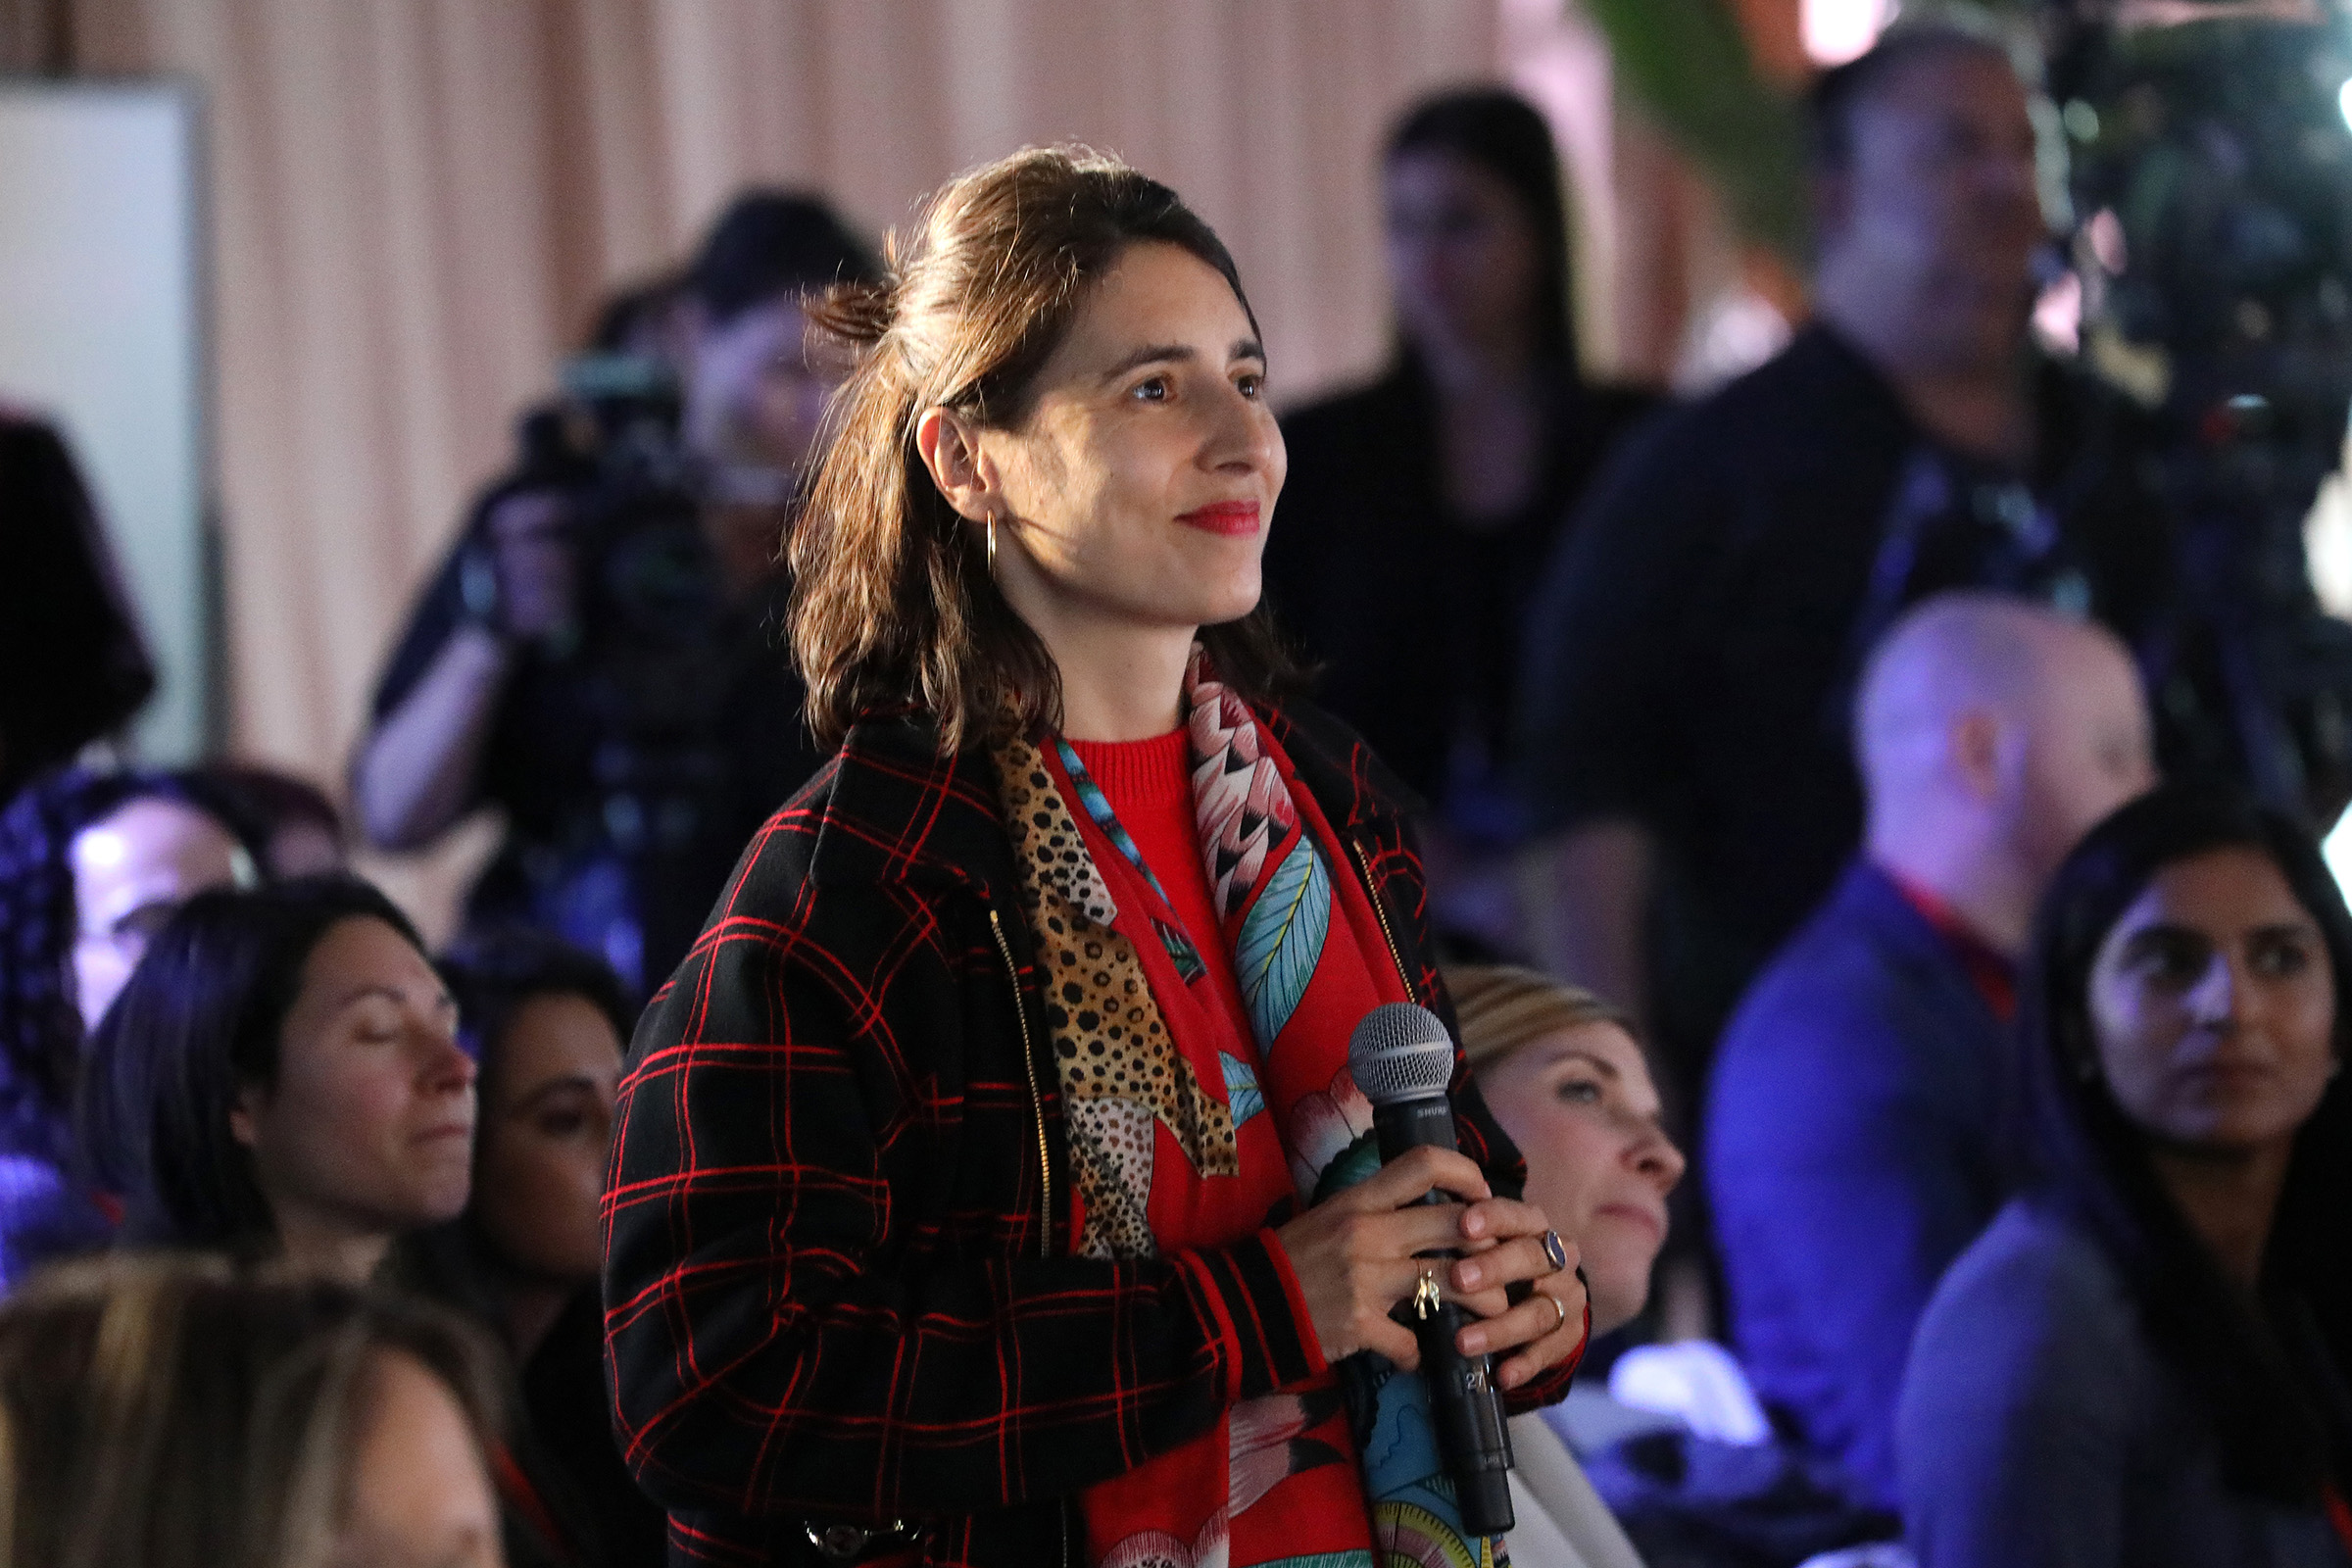 Artist Prune Nourry speaks from the audience during the TIME 100 Health Summit at Pier 17 in New York City on Oct. 17, 2019.